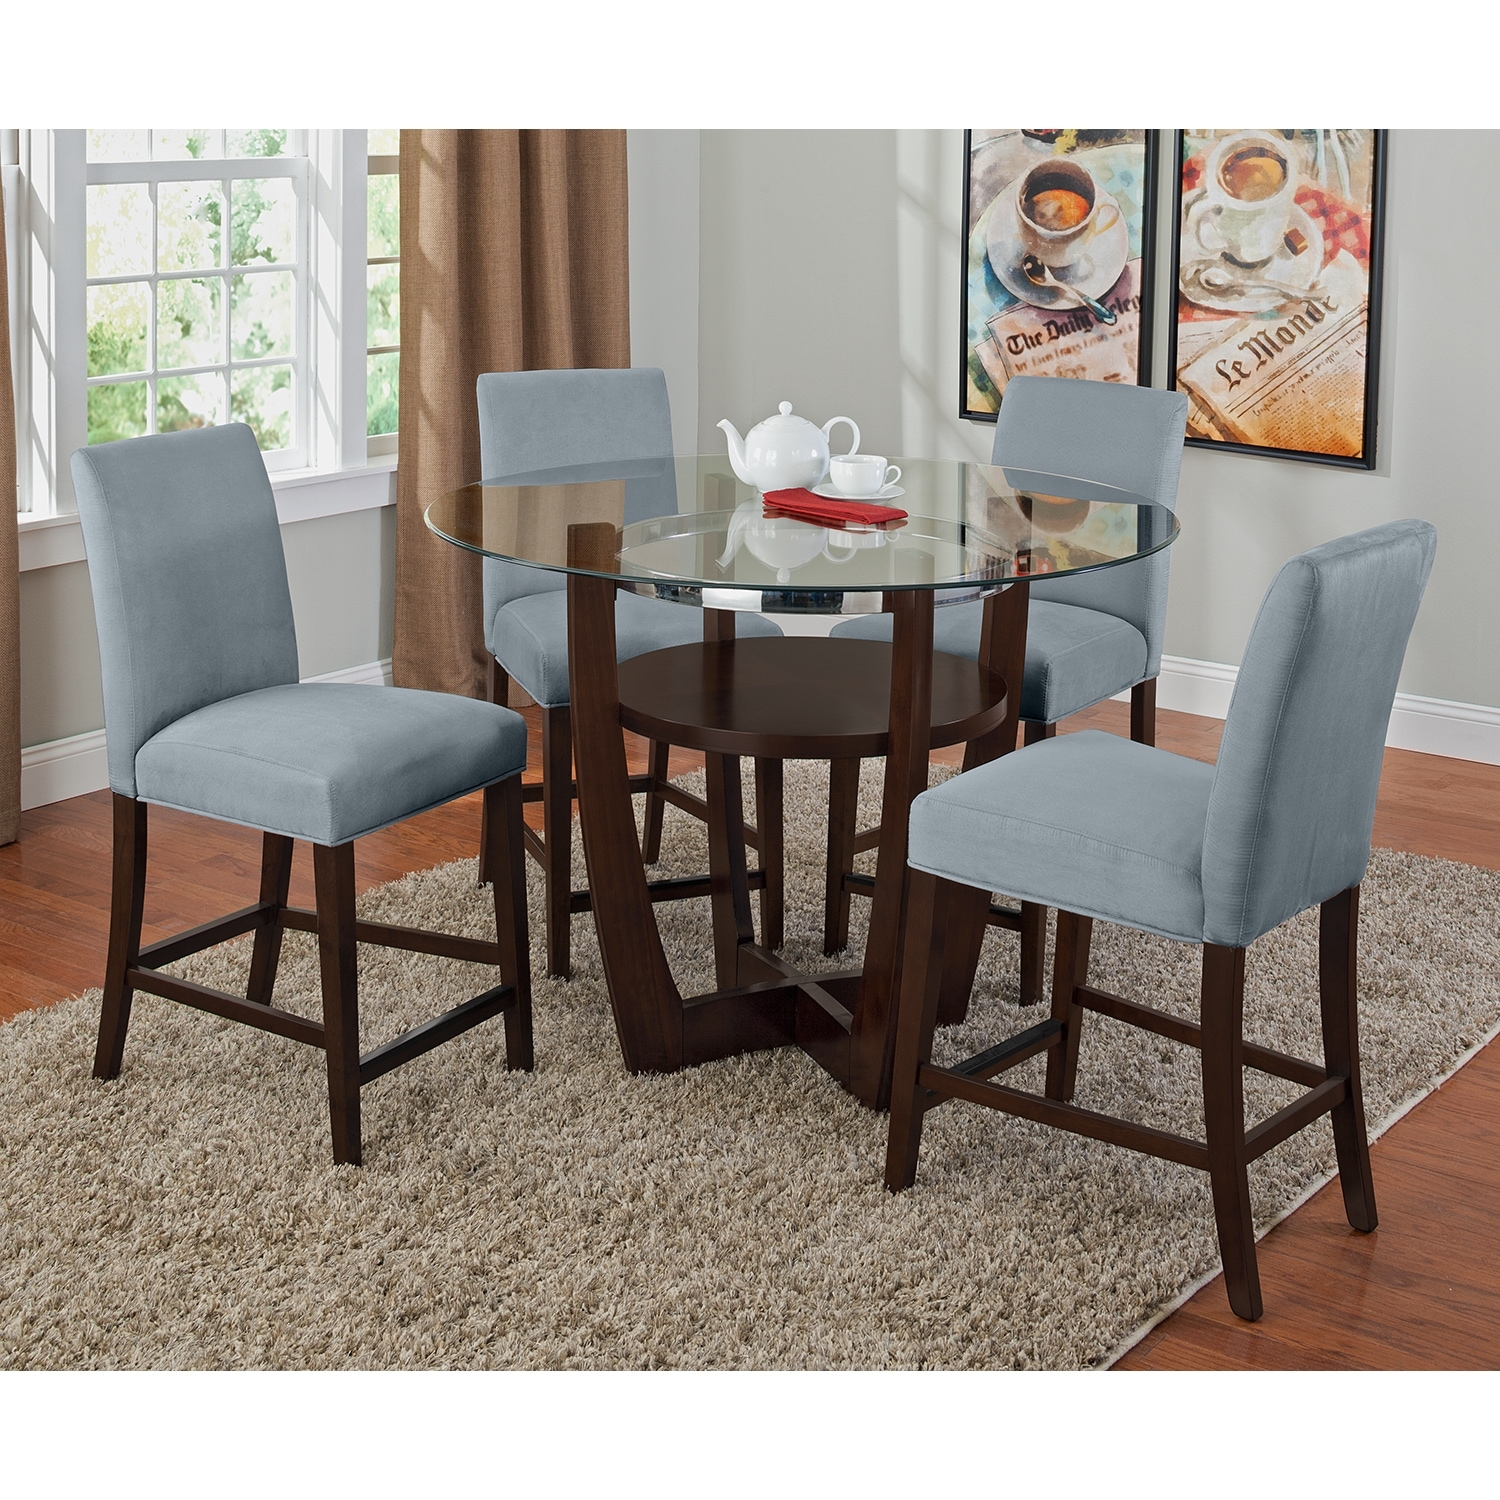 Counter Height Dining Room Chairs Alcove Counter Height Dinette With 4 Side Chairs Aqua